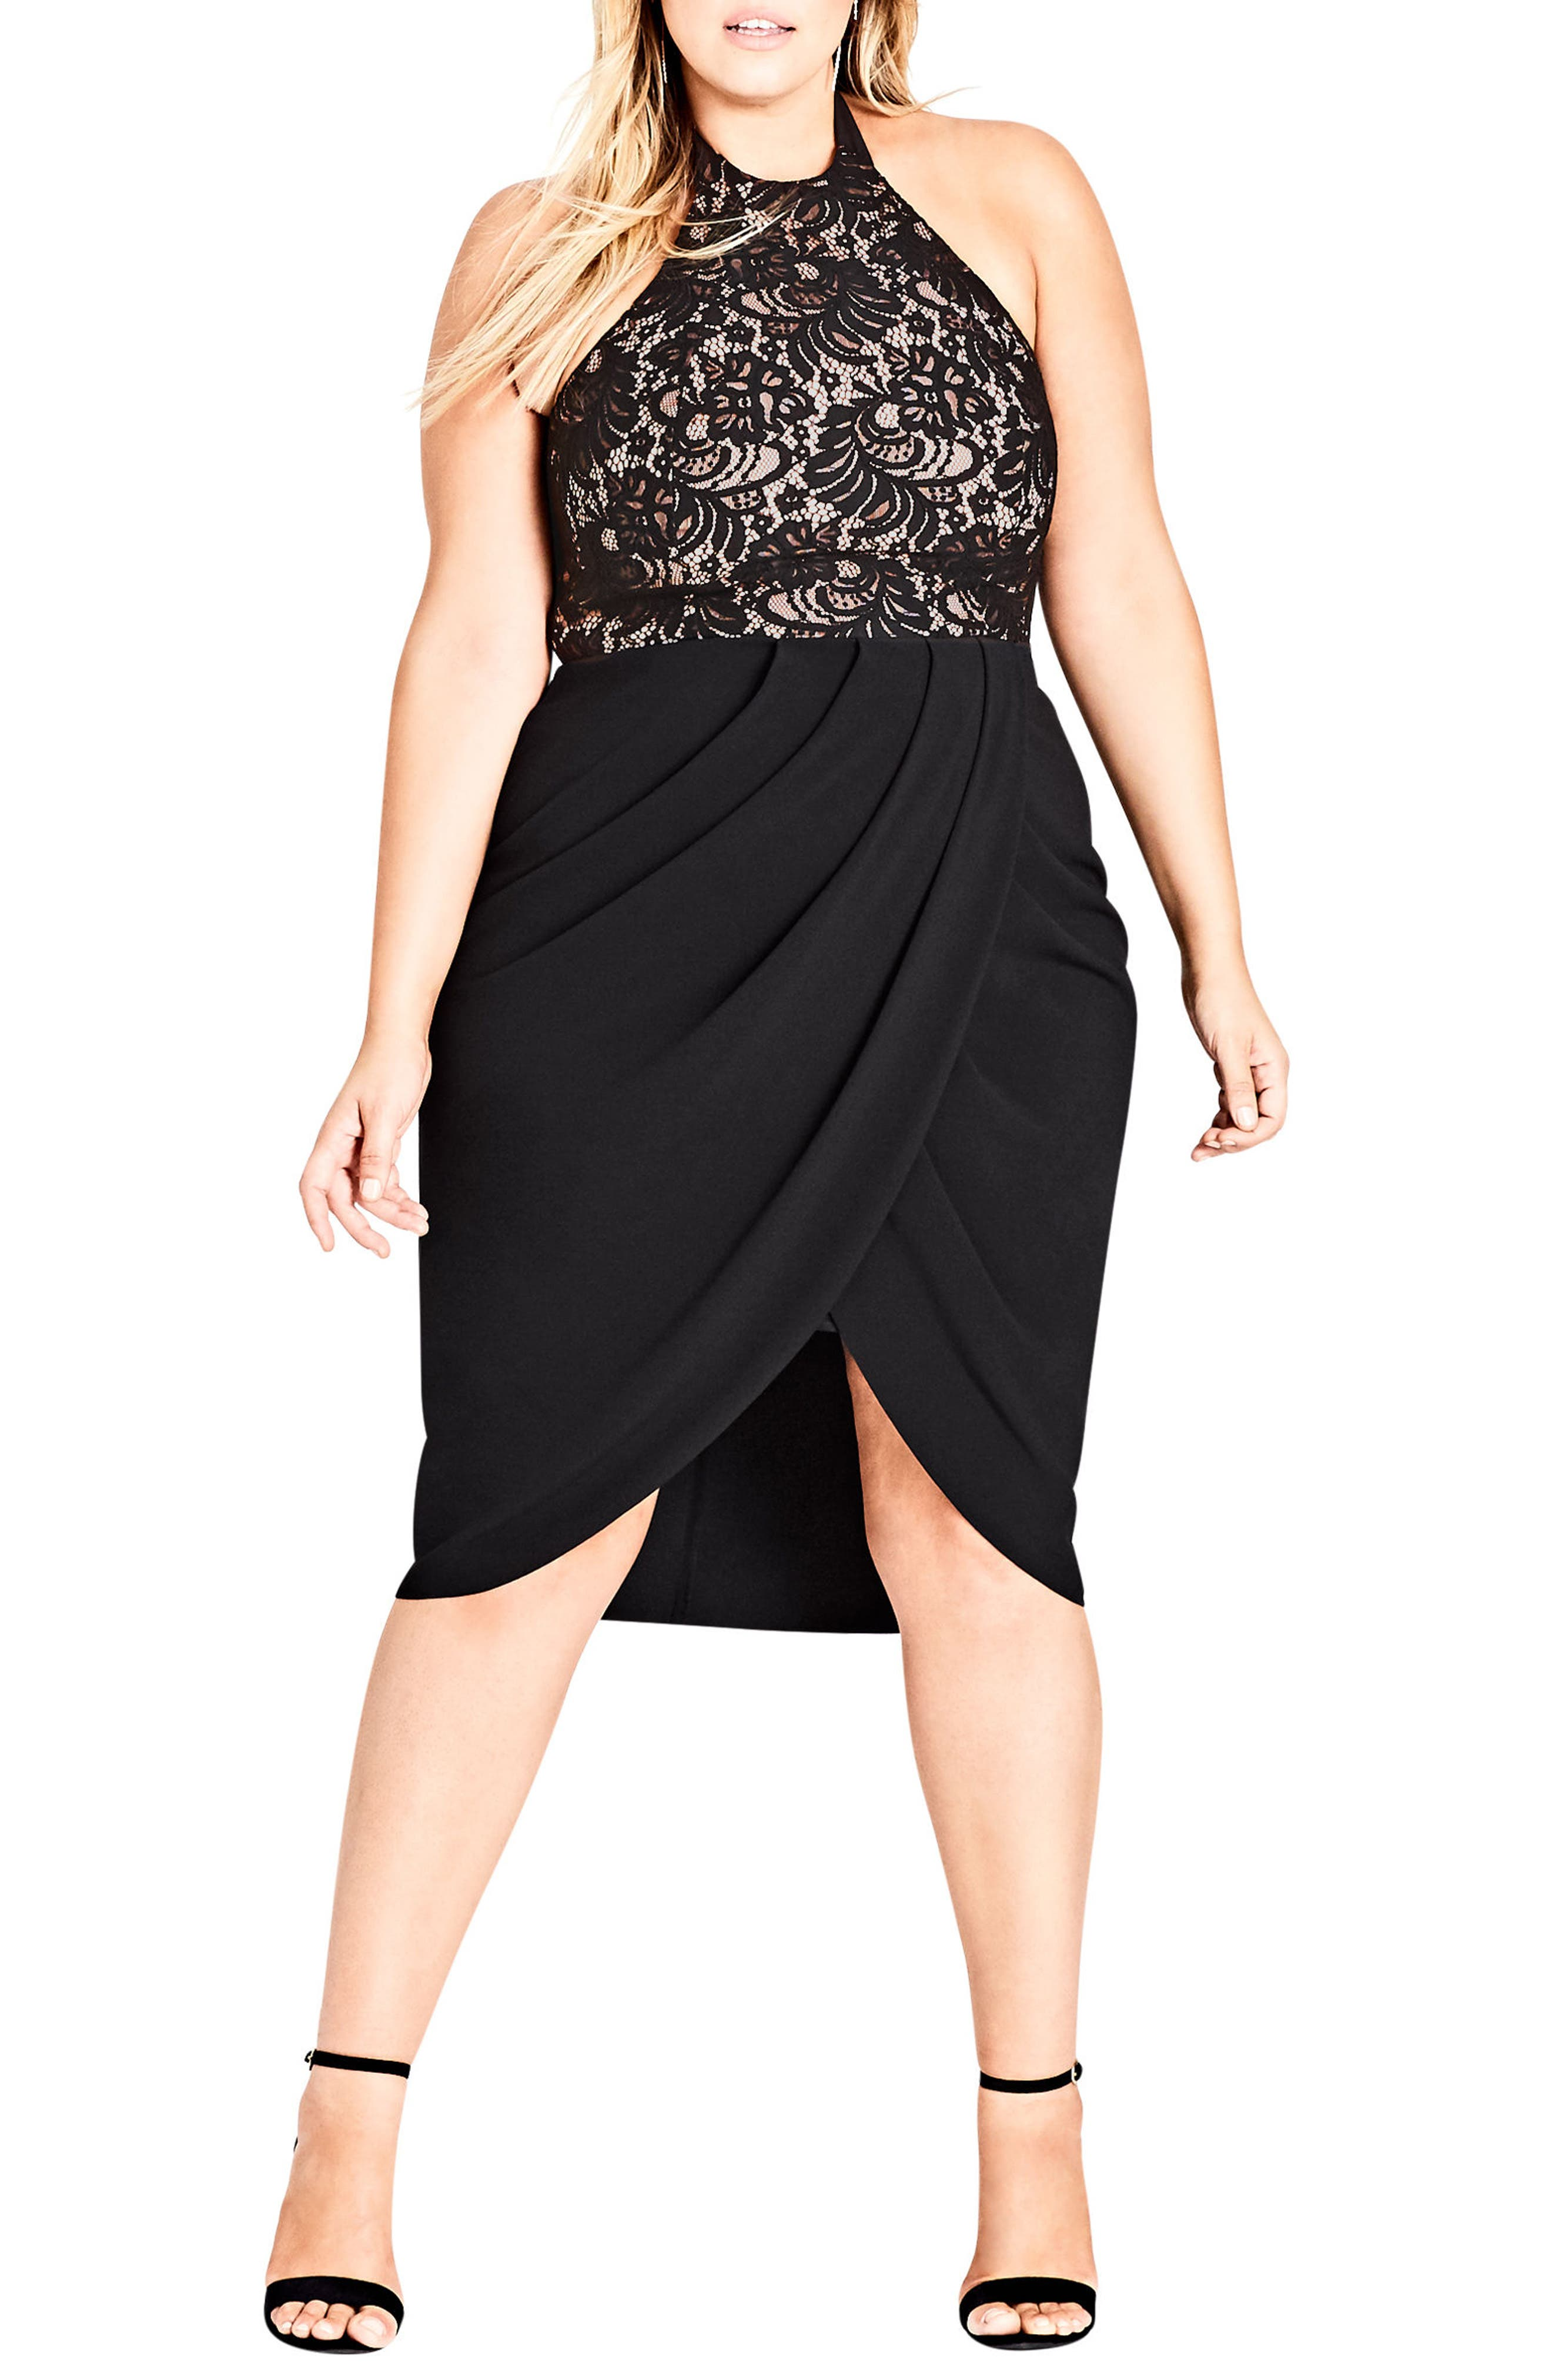 Lady Portia Halter Dress,                             Main thumbnail 1, color,                             BLACK